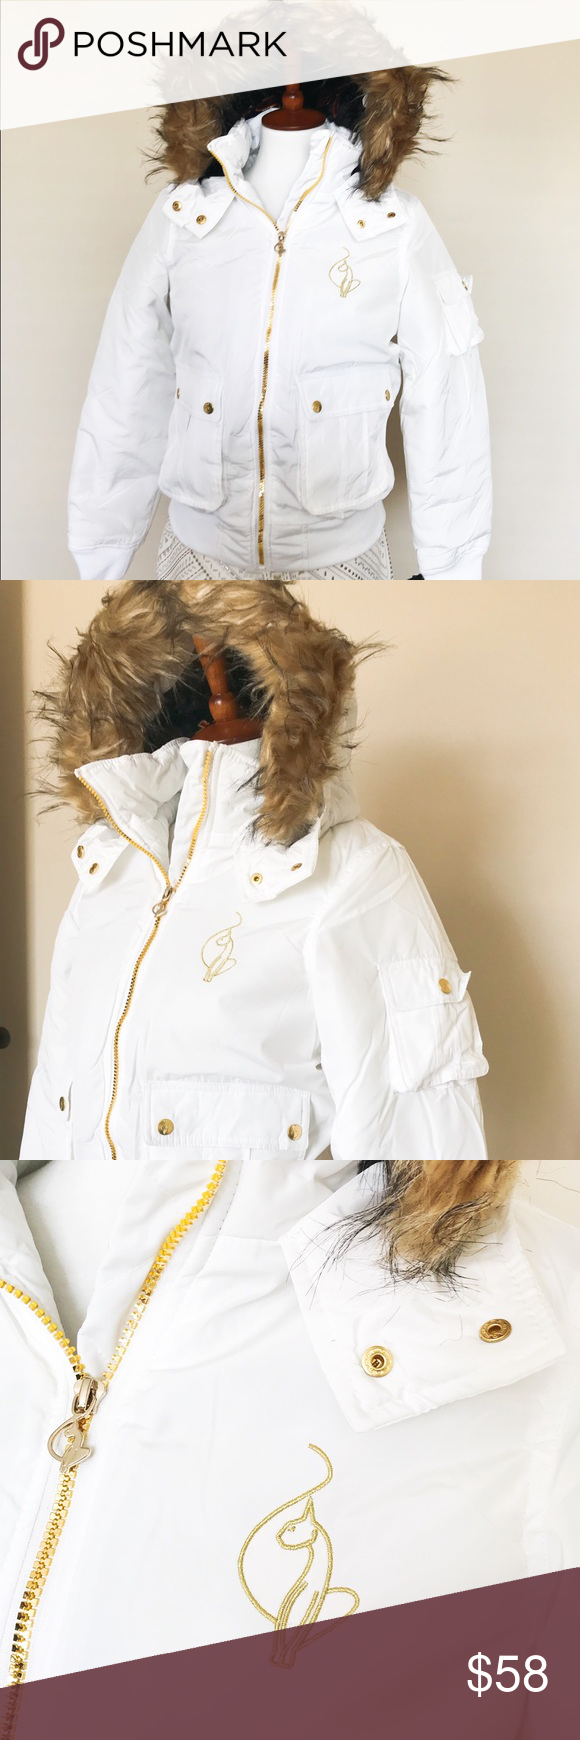 83e101c7a Baby Phat white puffer jacket New with tag. Hood is not detachable ...